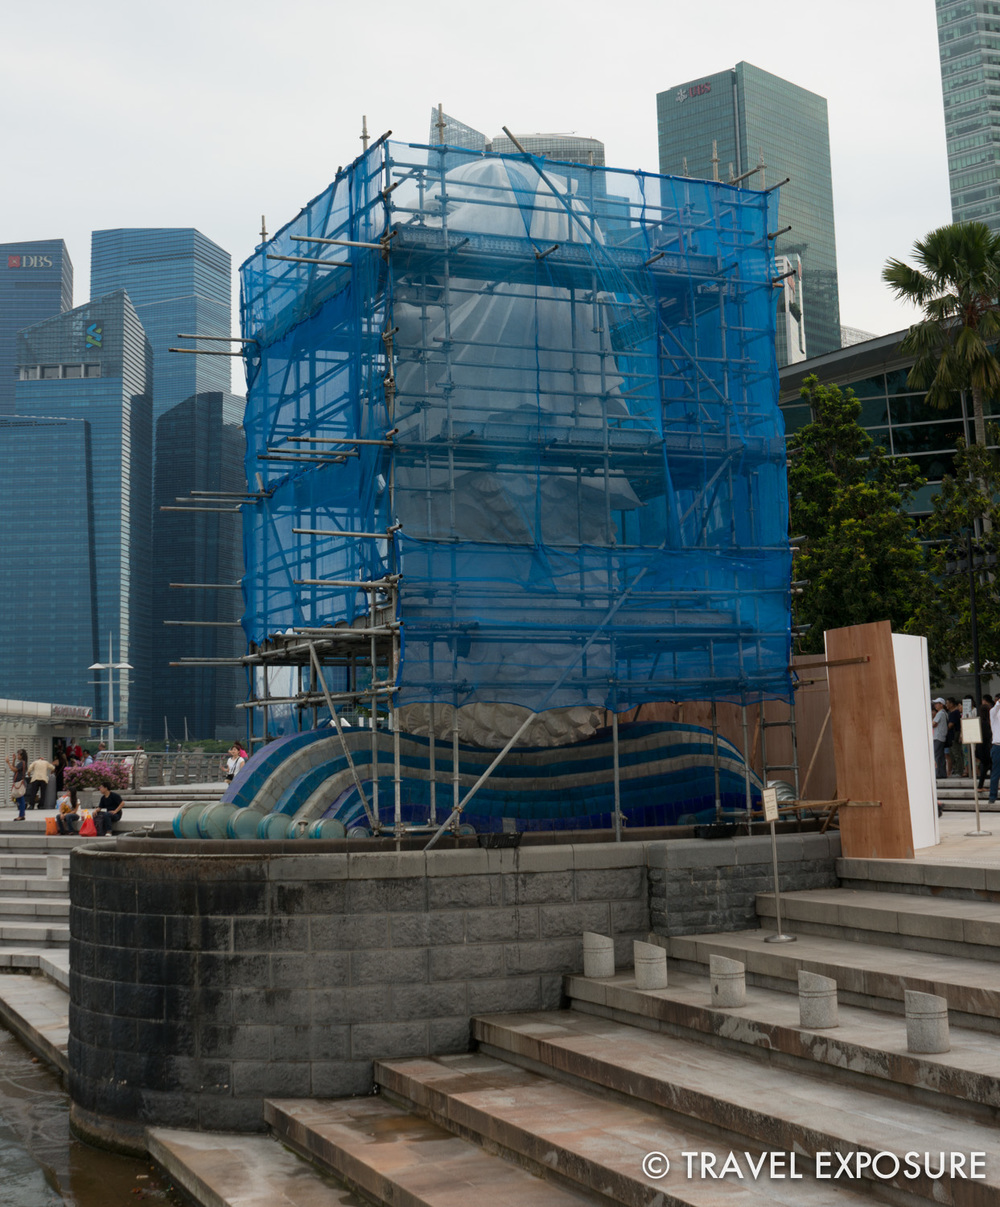 Singapore's most famous icon is the half-lion, half-fish Merlion, seen here under renovation